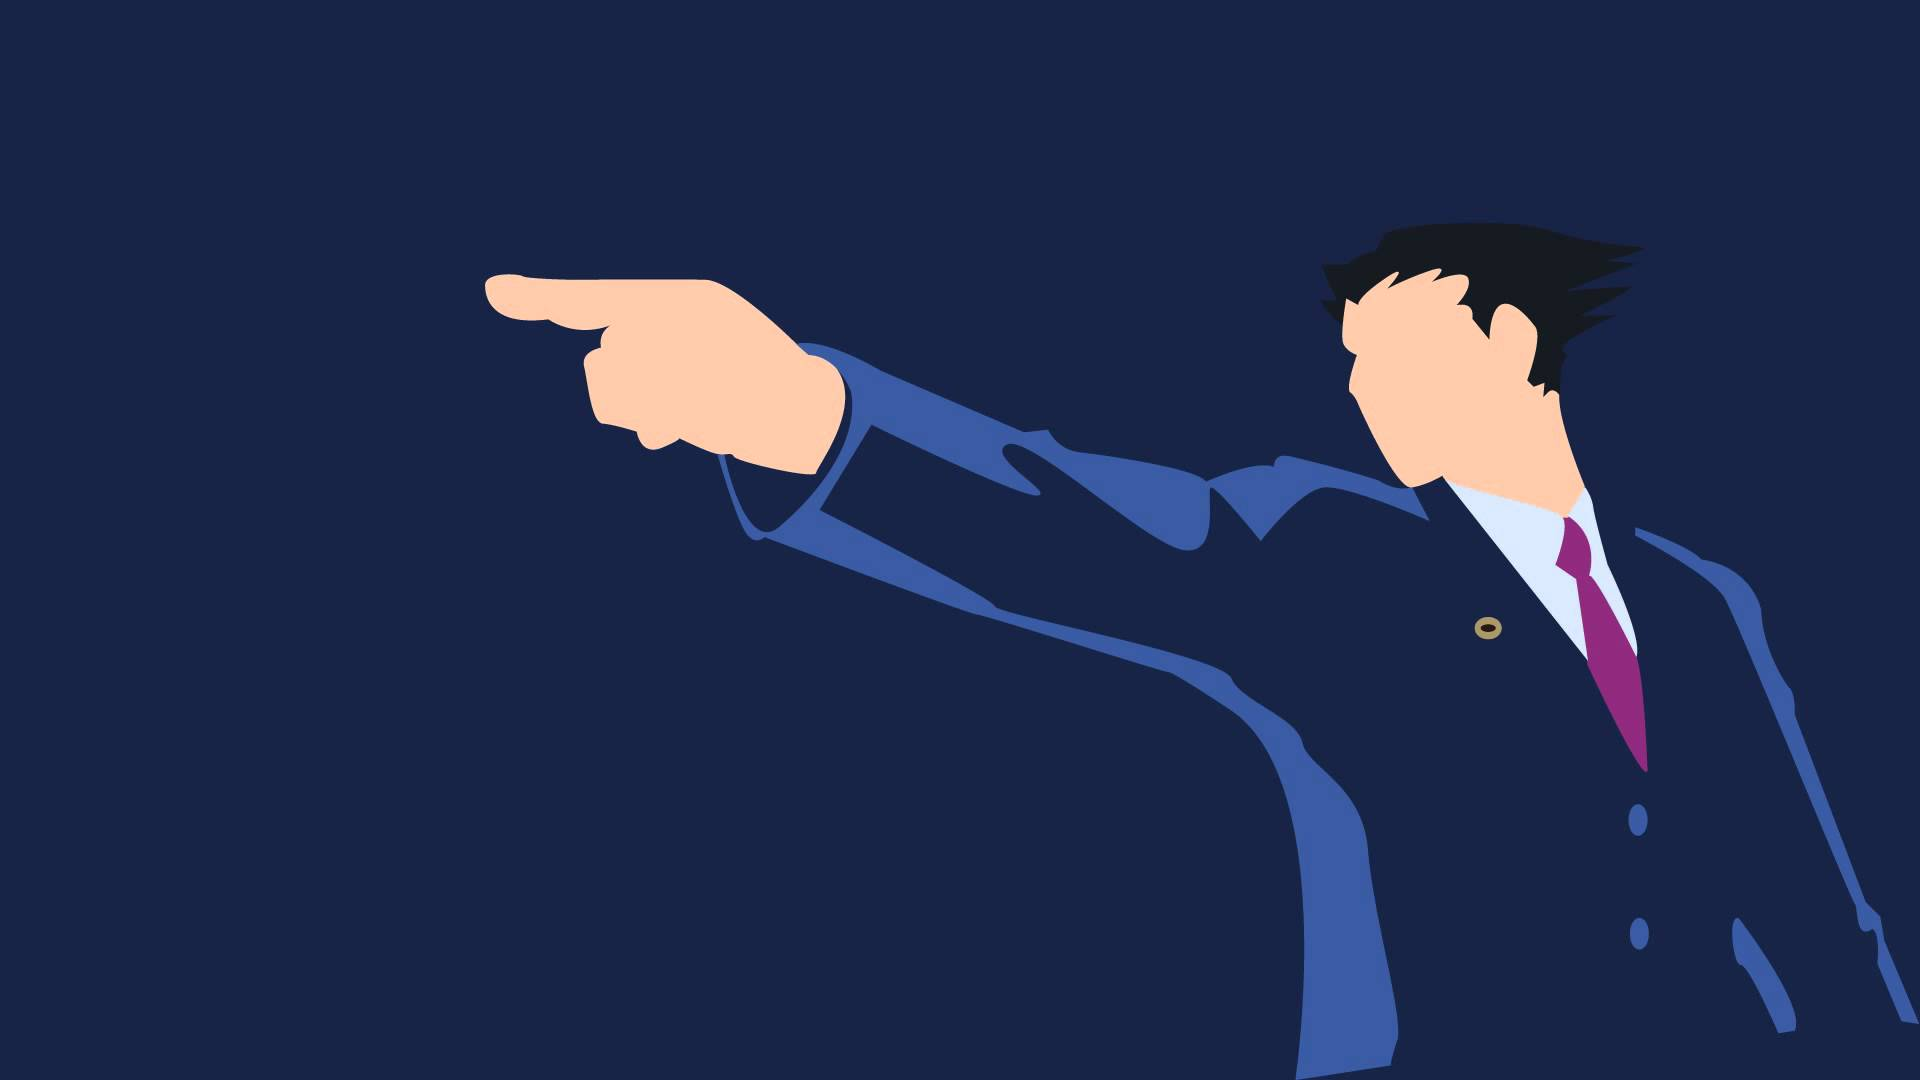 EXTENDED Favorite VGM 59   Phoenix Wright Ace Attorney 1920x1080